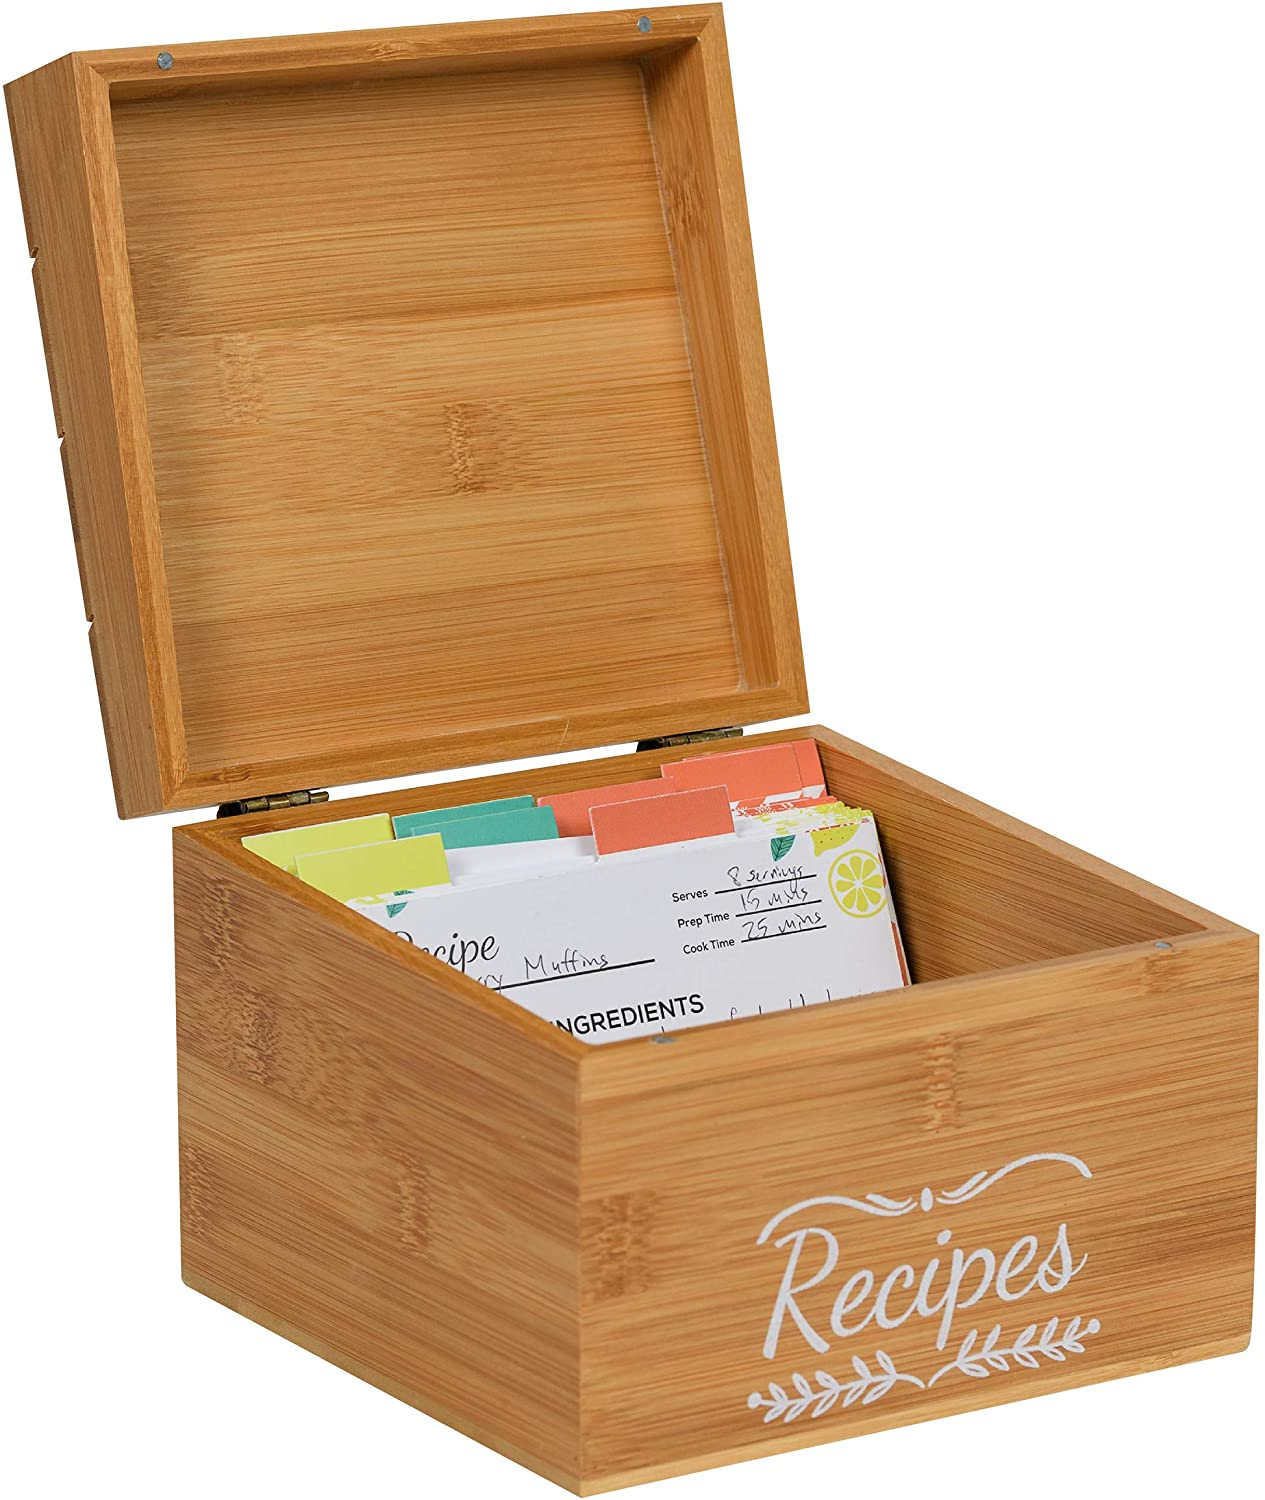 Pinelive TriSlot Recipe Box with Cards and Dividers - Rustic Wood Recipe Box with 76 Blank Recipe Cards 4x6, 8x Dividers and Measurements. For Kitchen, or Recipe Cards for Bridal Shower Gift (Bamboo)